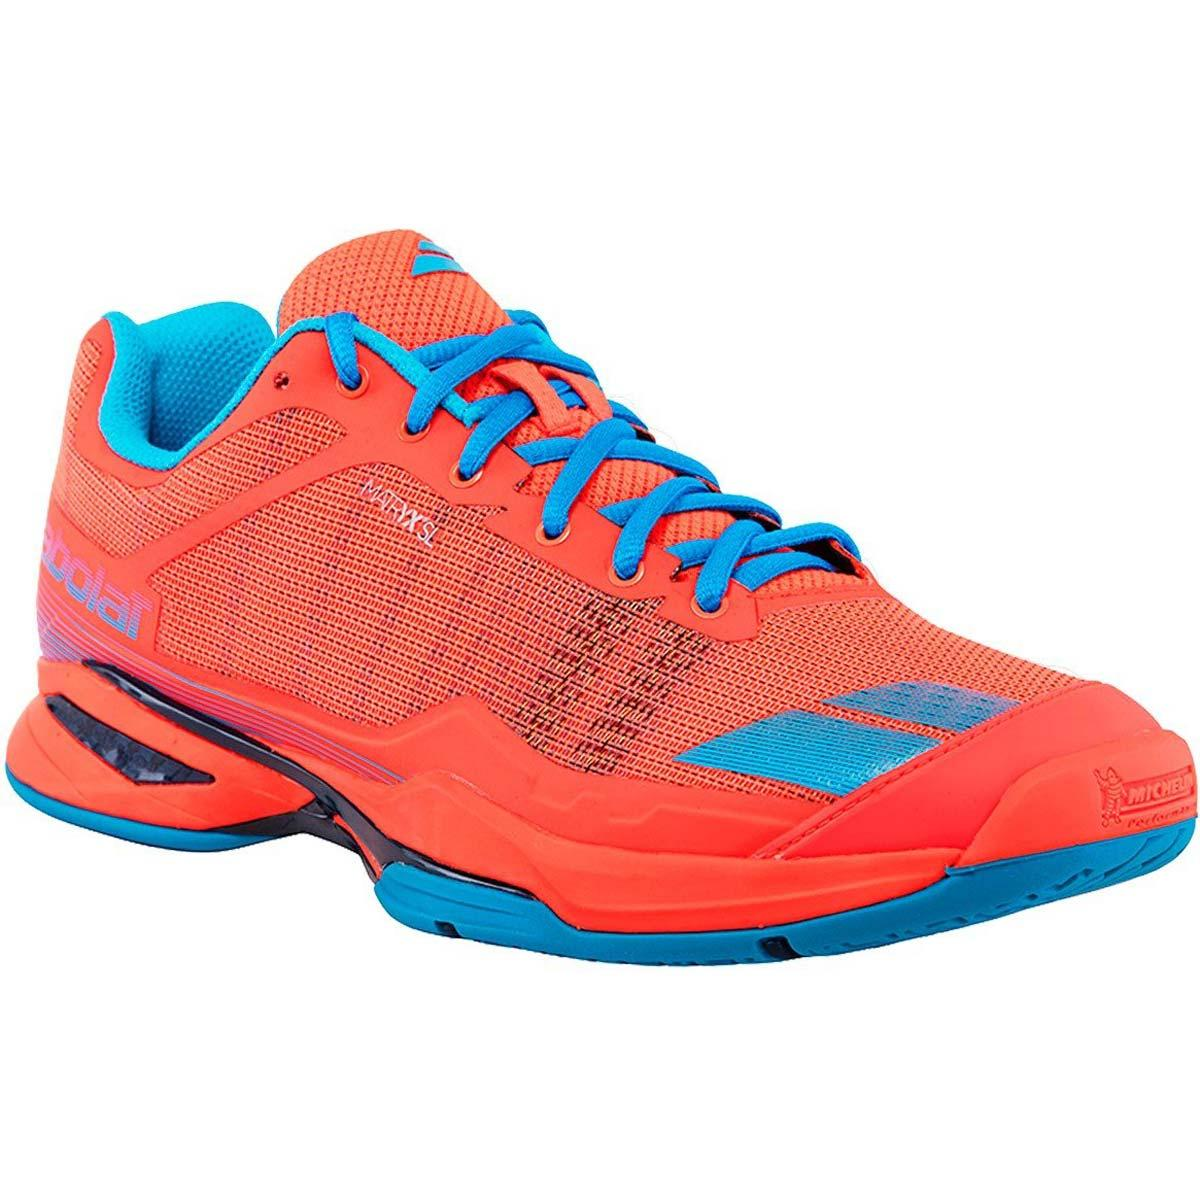 Buy Babolat Jet Team All Court Mens Tennis Shoes Red Blue Online India